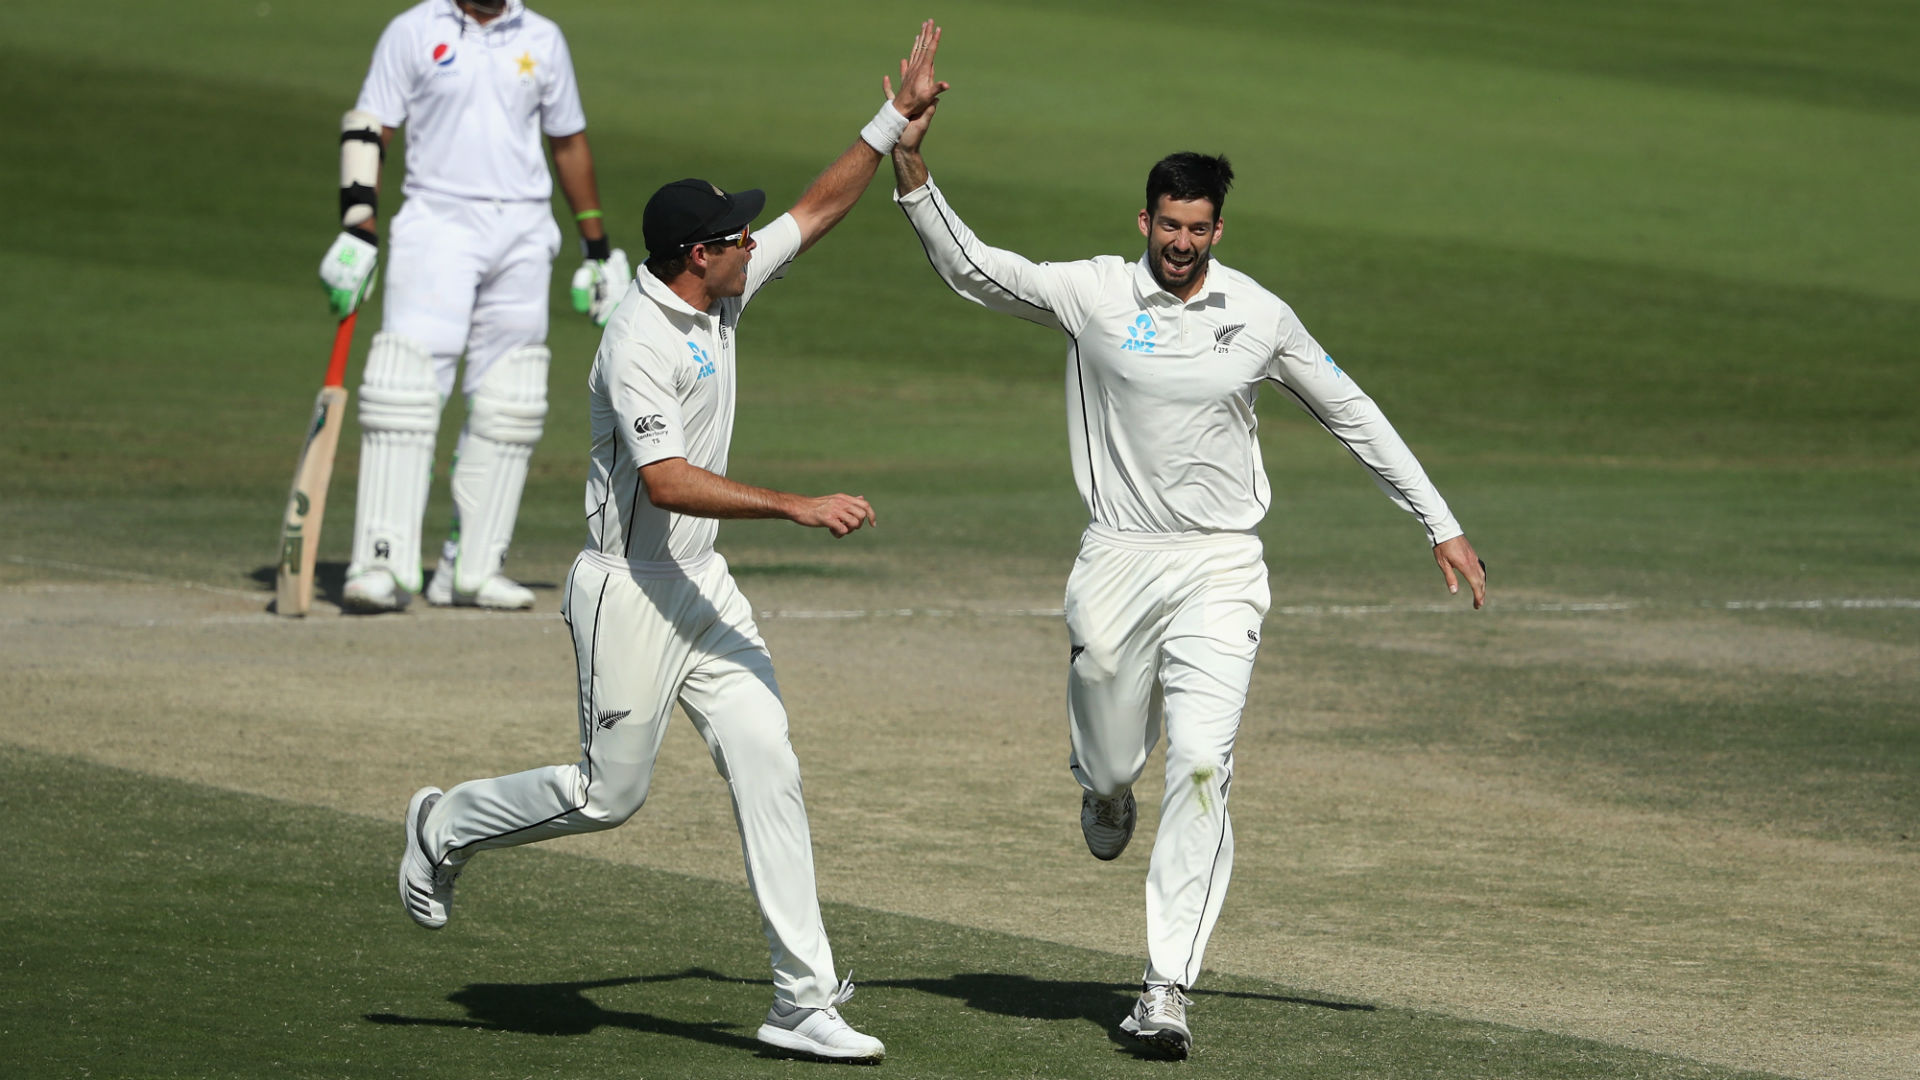 Tim Southee and William Somerville came to the fore as New Zealand needed less than two sessions to seal victory over Pakistan on day five.